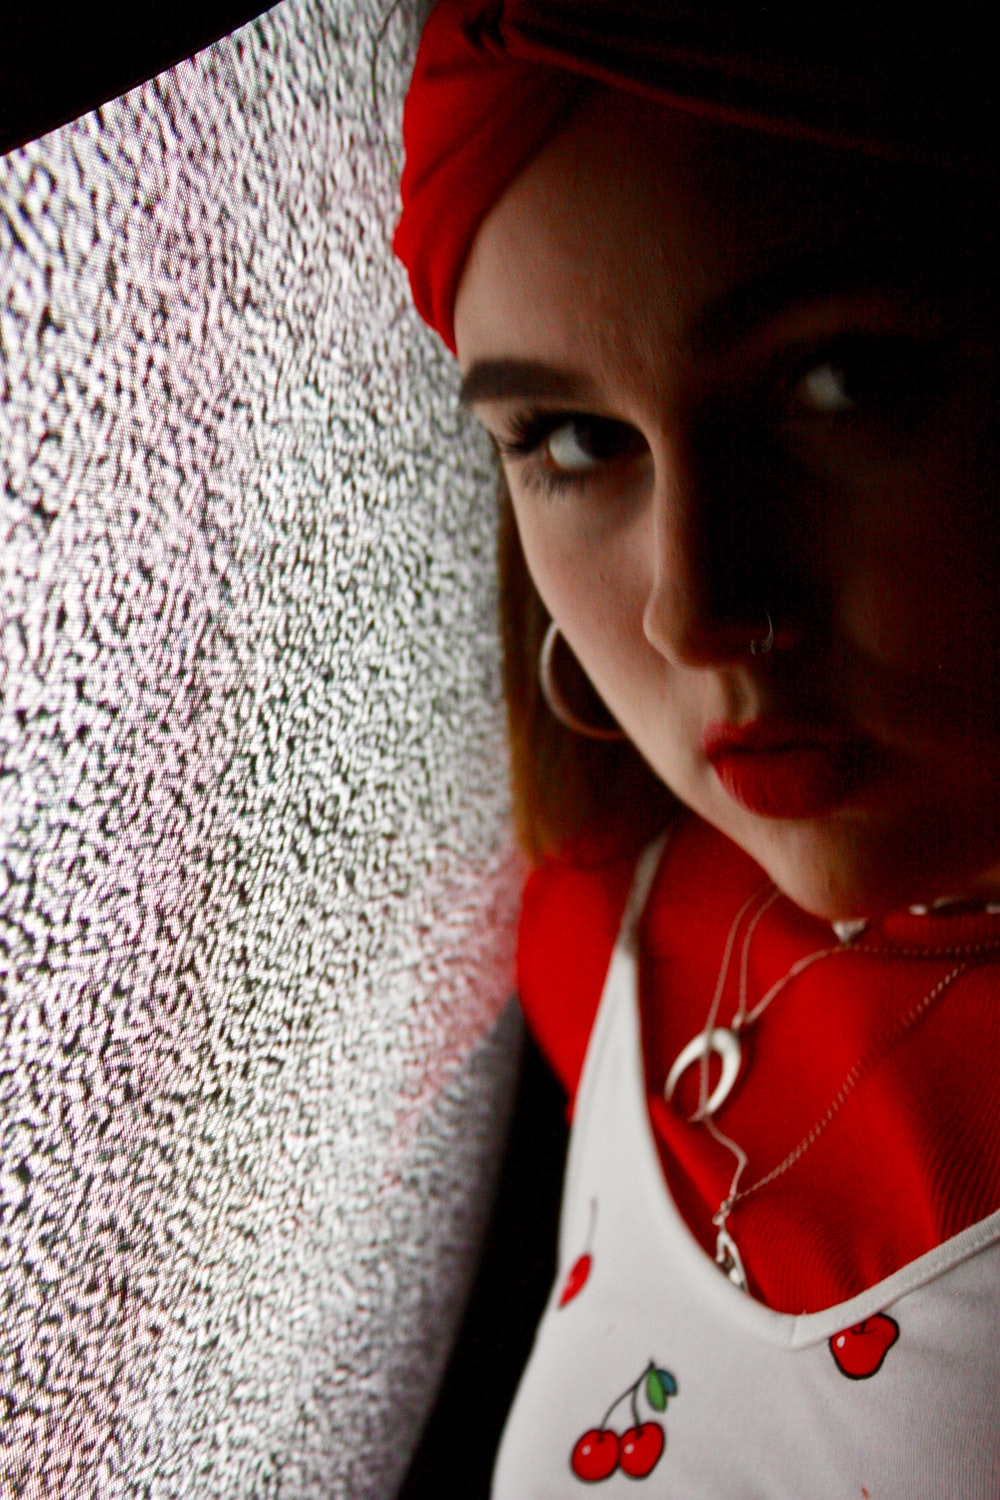 woman in red and white top facing by a CRT TV